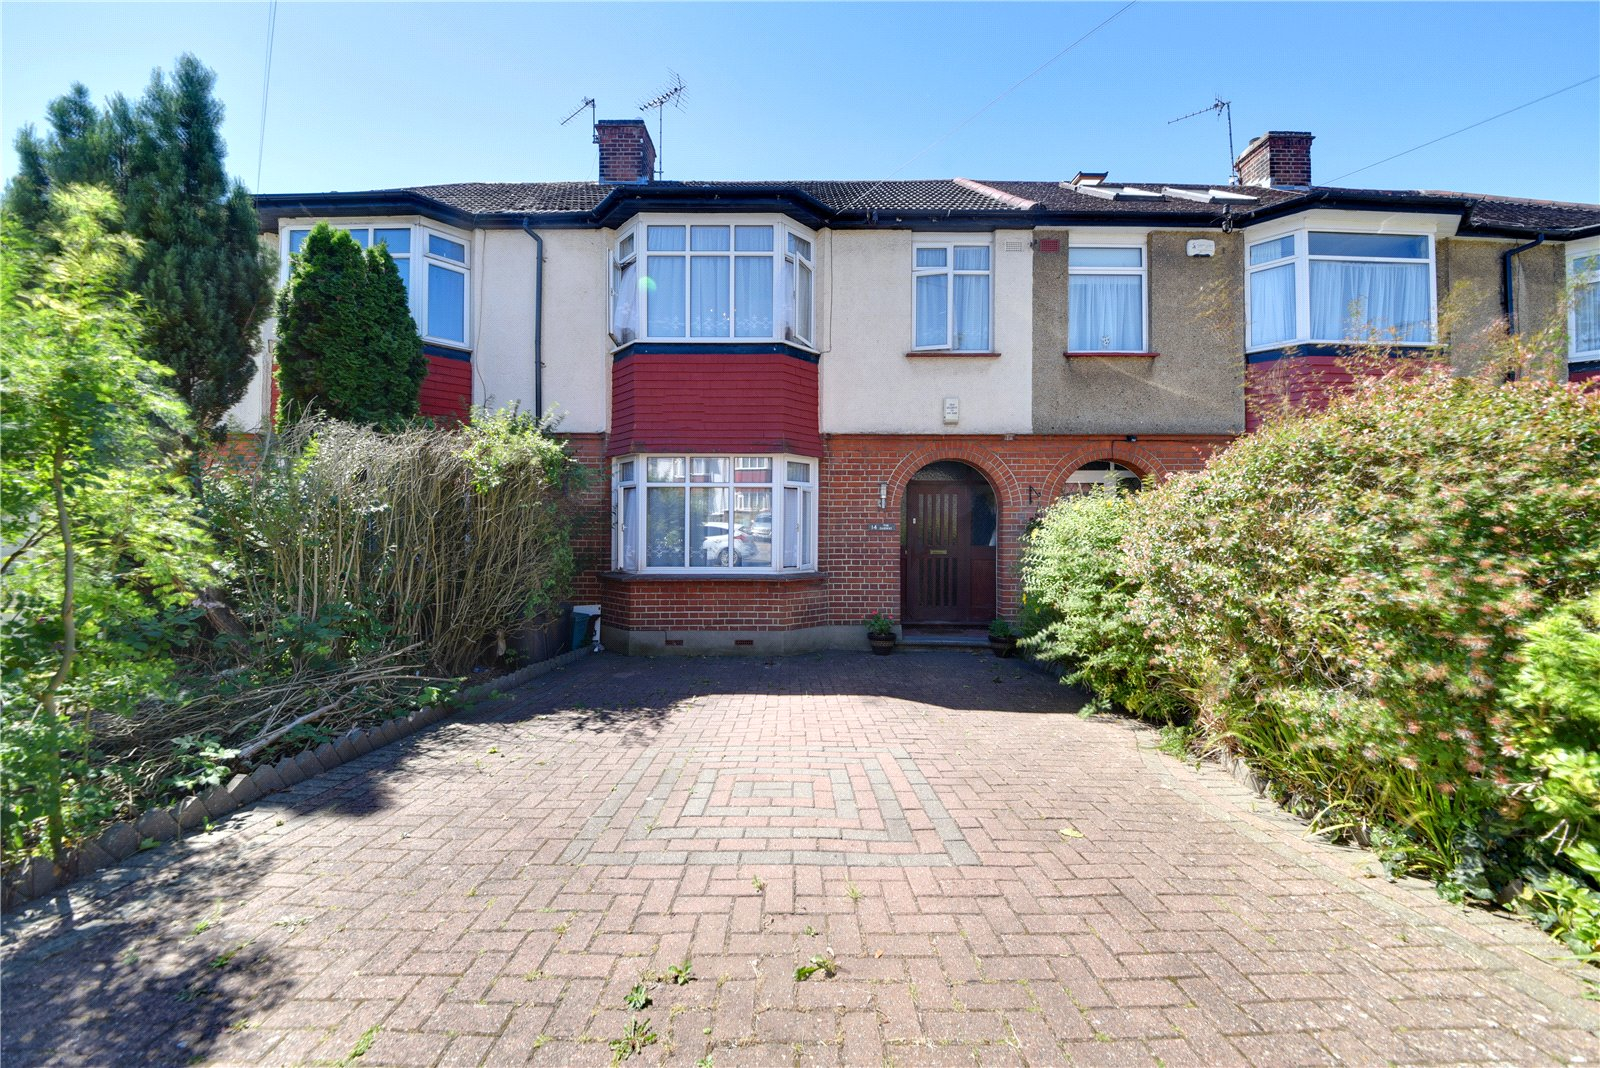 3 bed house for sale in Southgate, N14 4NY  - Property Image 7